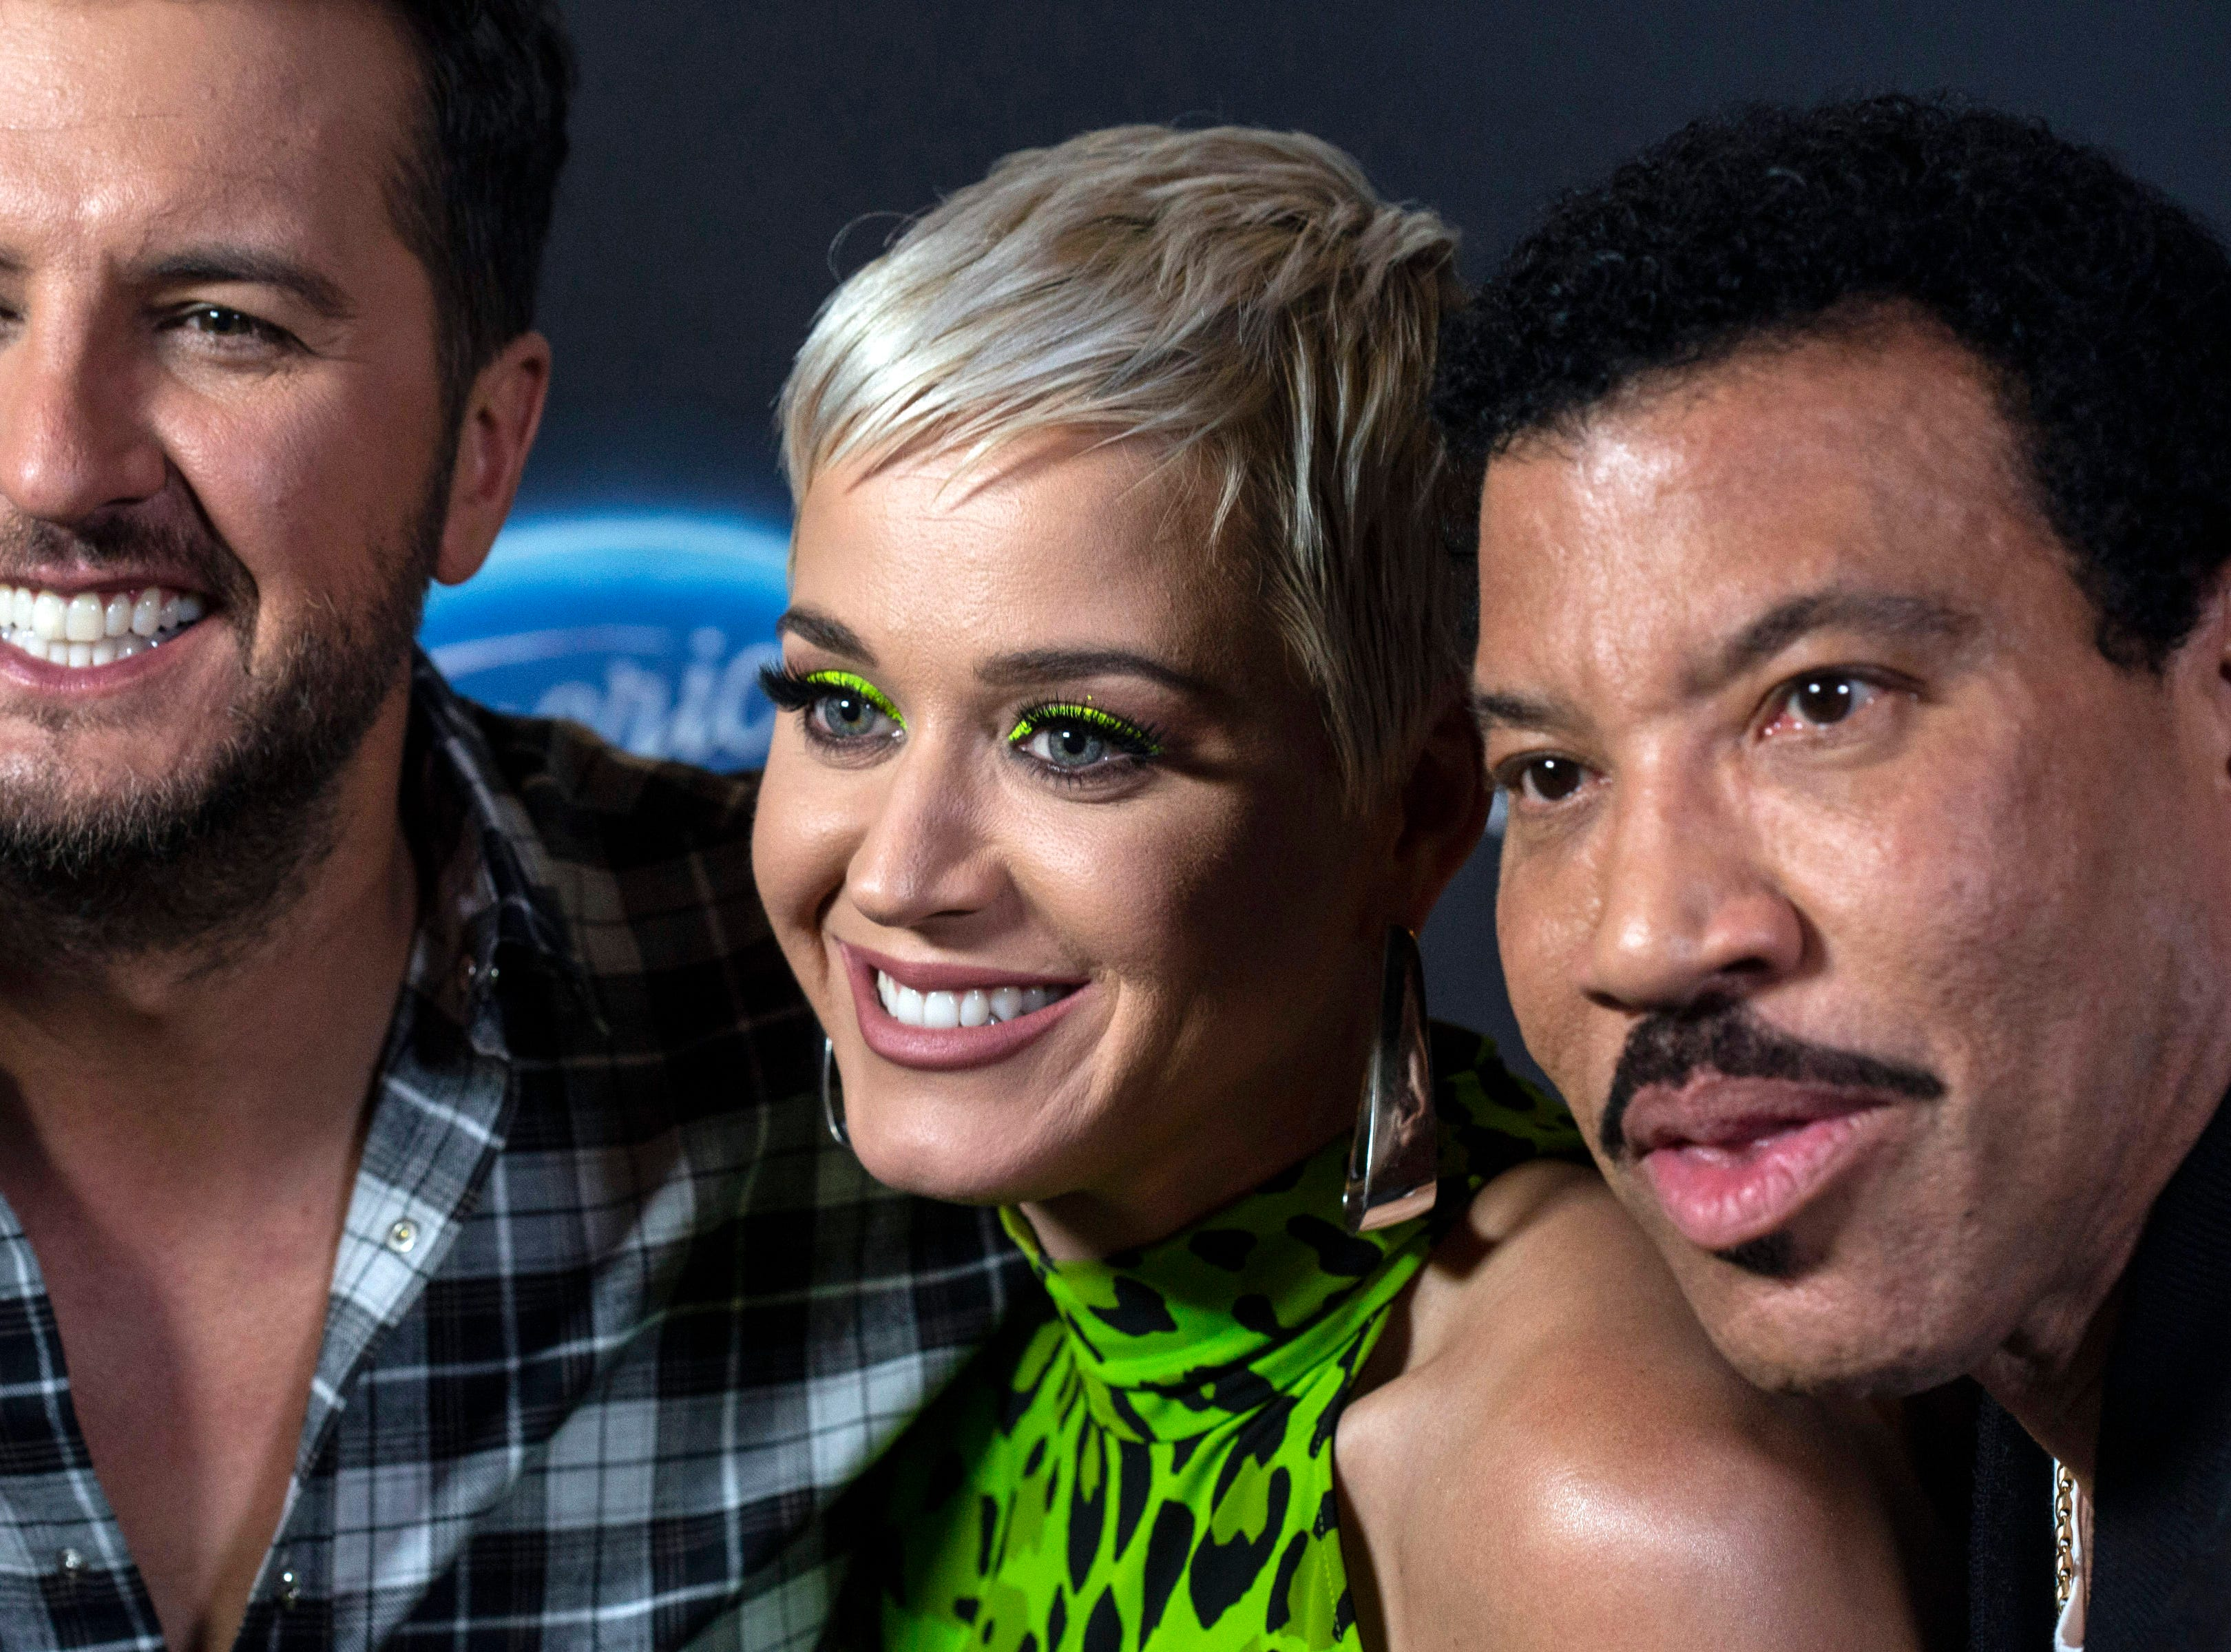 American Idol judges Luke Bryan, Katy Perry and Lionel Richie took a break at the Ali Center during Tuesday night auditions to speak to the media in Louisville, Ky. 